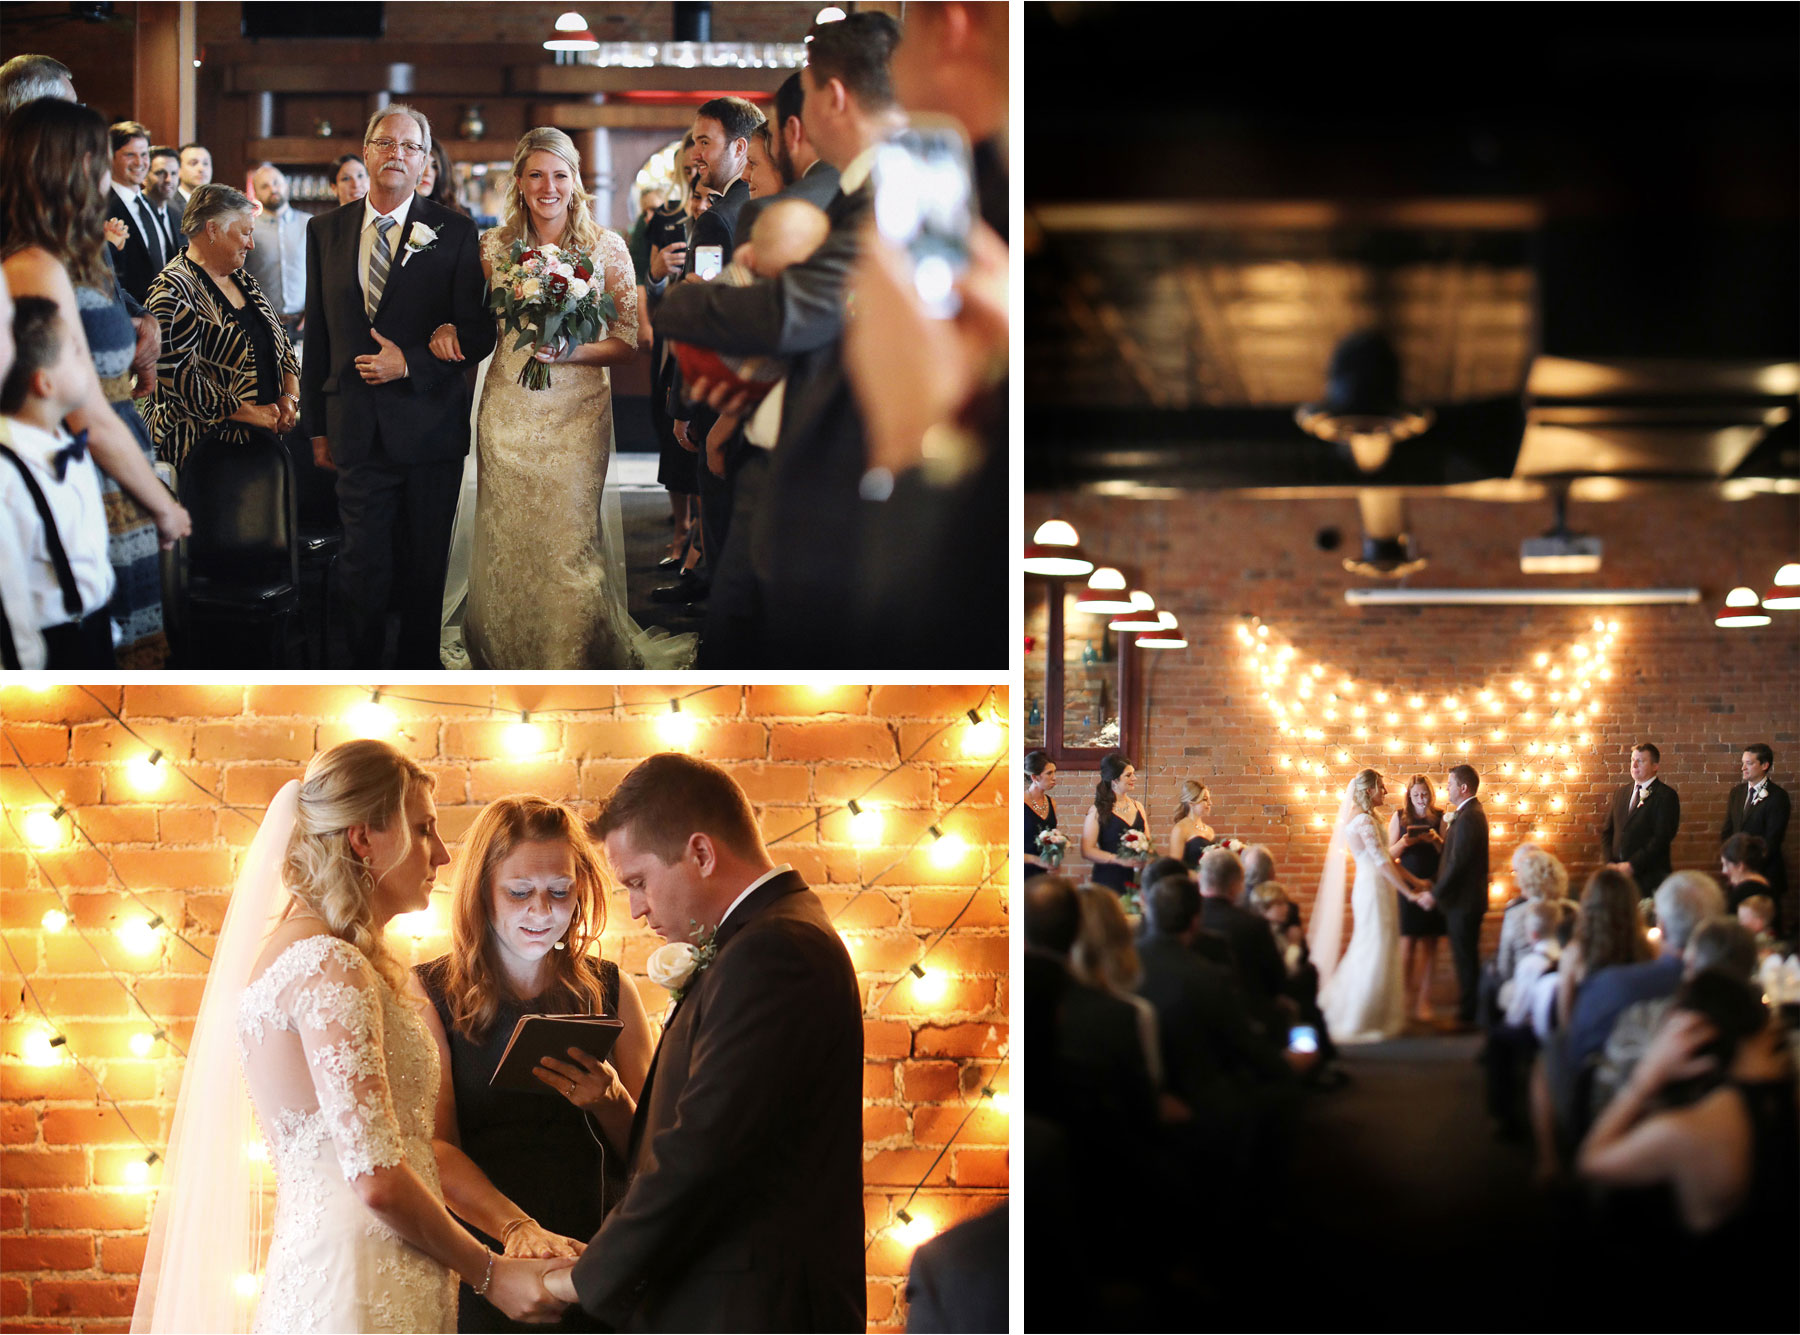 16-Shakopee-Minnesota-Wedding-Photography-by-Vick-Photography-Turtles-1890-Social-Centre-Ceremony-Amber-and-Justin.jpg